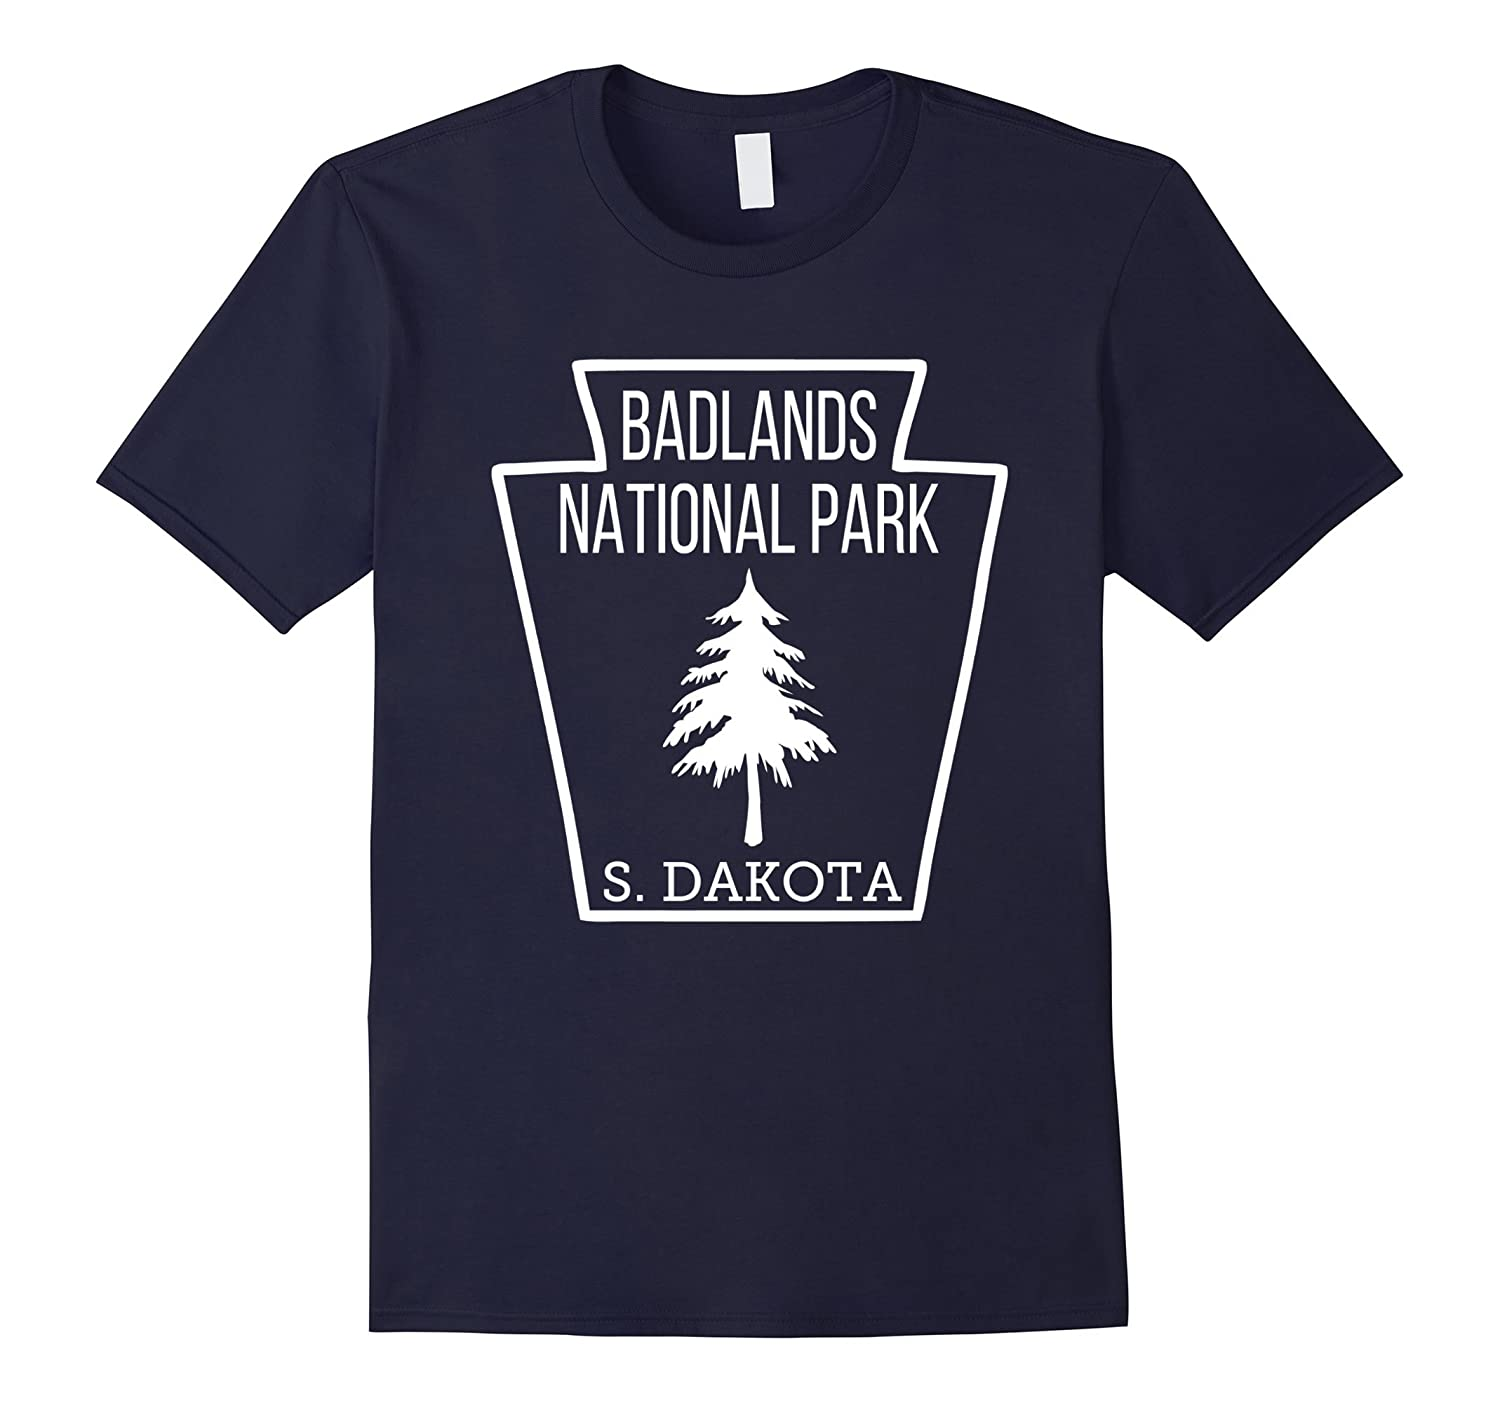 Badlands National Park T Shirt South Dakota Emblem-Vaci